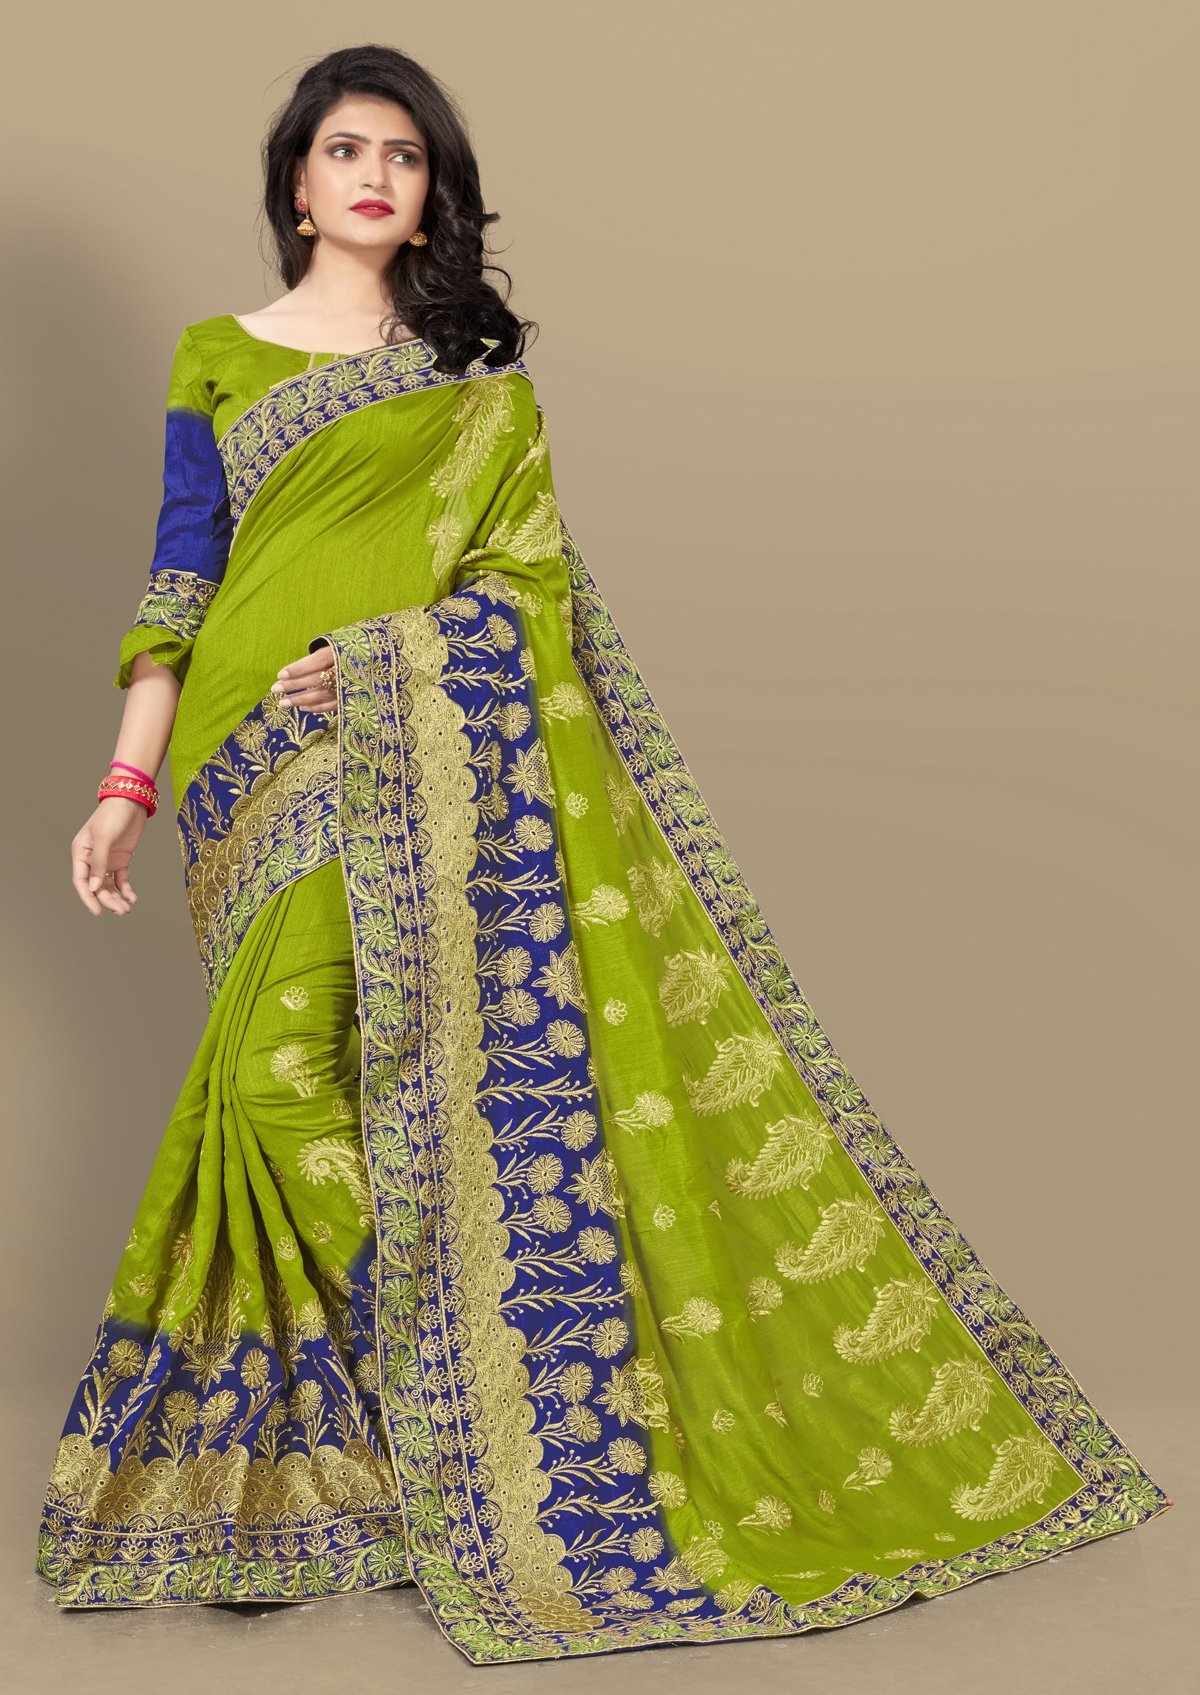 791e3c0db43783 Buy Craftsvilla Green Silk Blend Zari Work Designer Saree With Unstitched  Blouse Material Online